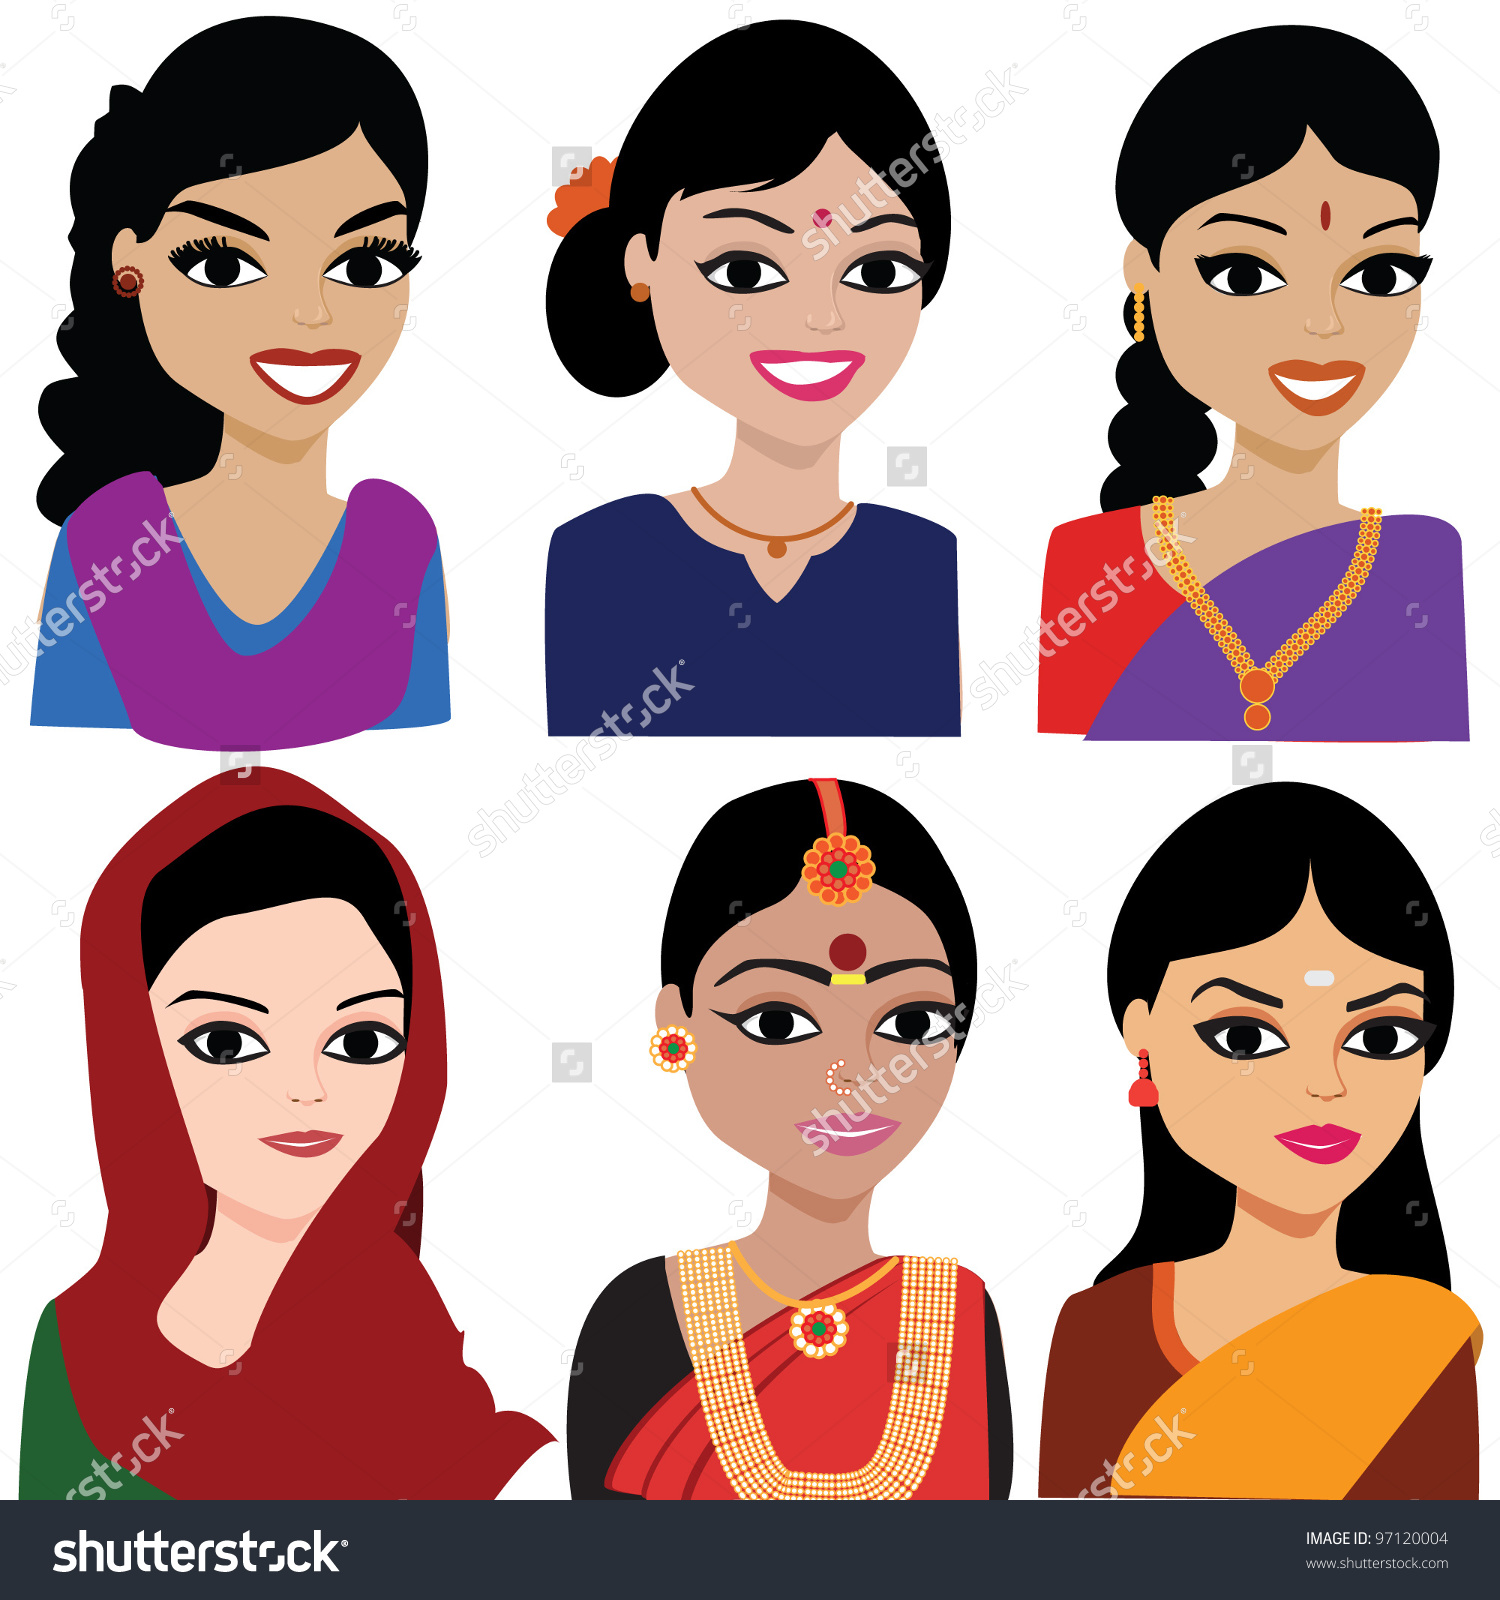 Woman from india clipart clipart transparent stock Indian Woman Vector Avatar Indian Woman Stock Vector 97120004 ... clipart transparent stock